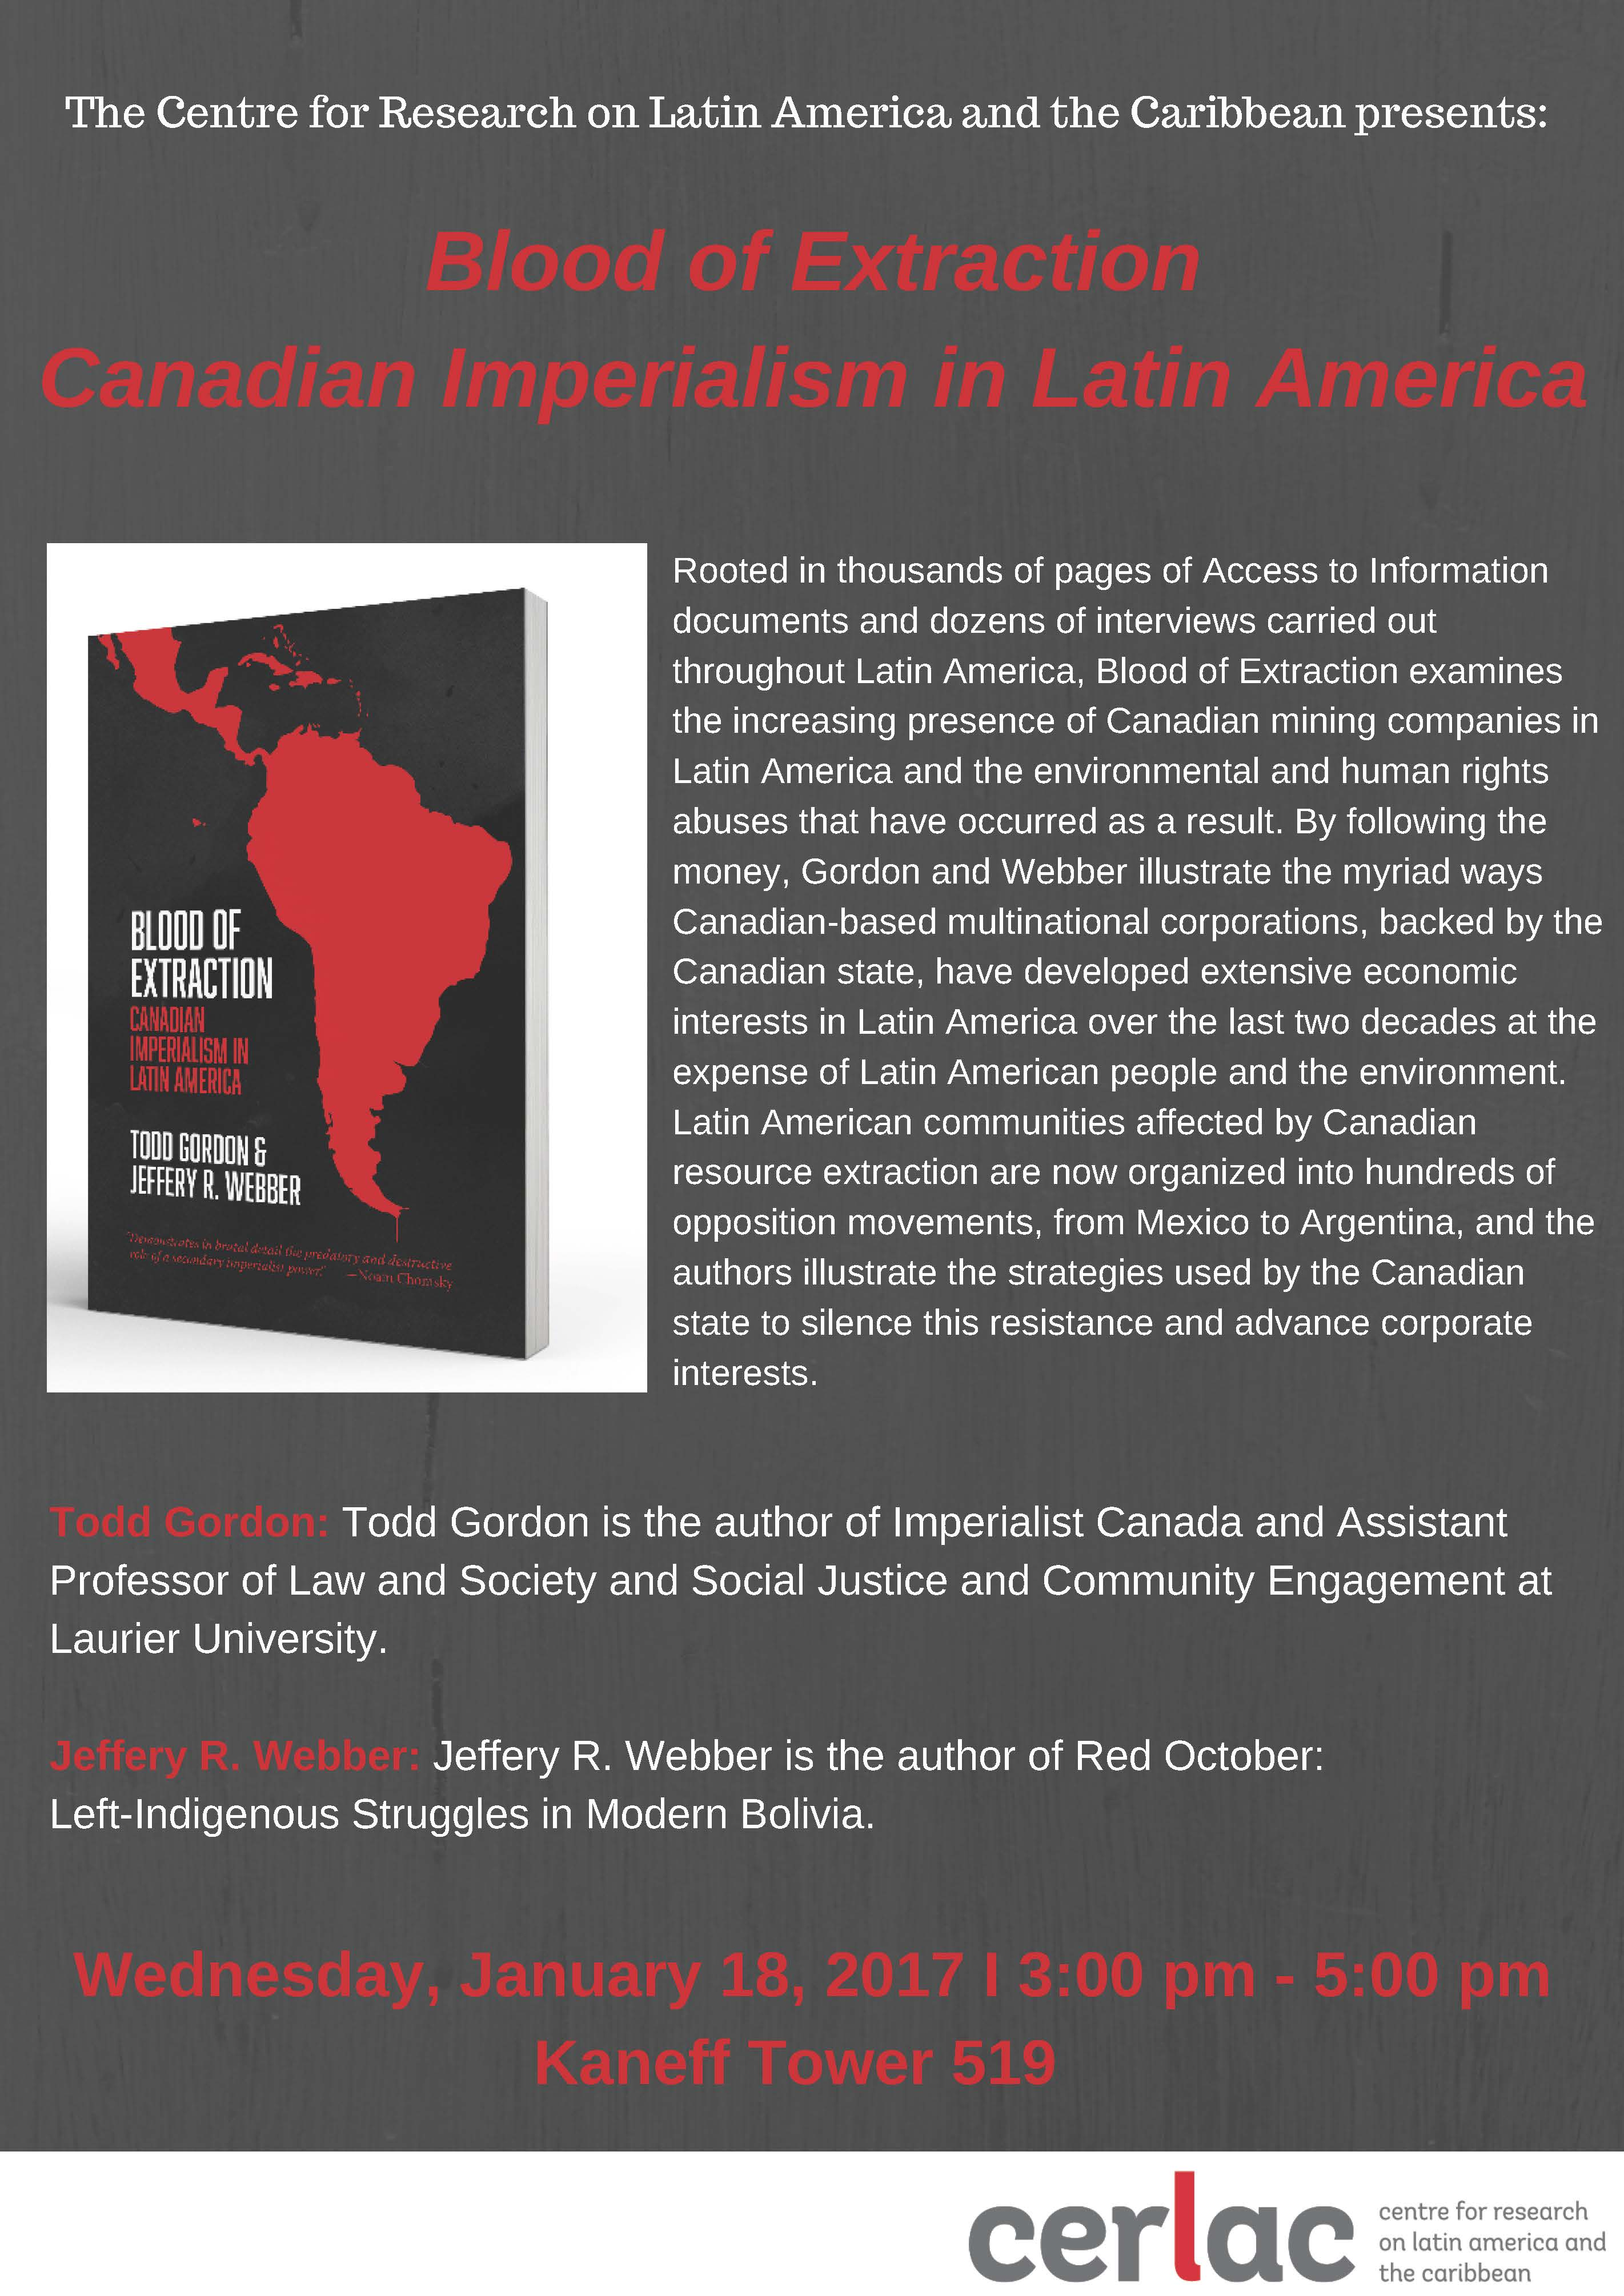 Blood of Extraction - Canadian Imperialism in Latin America. Todd Gordon and Jeffery R. Webber @ Kaneff Tower 519